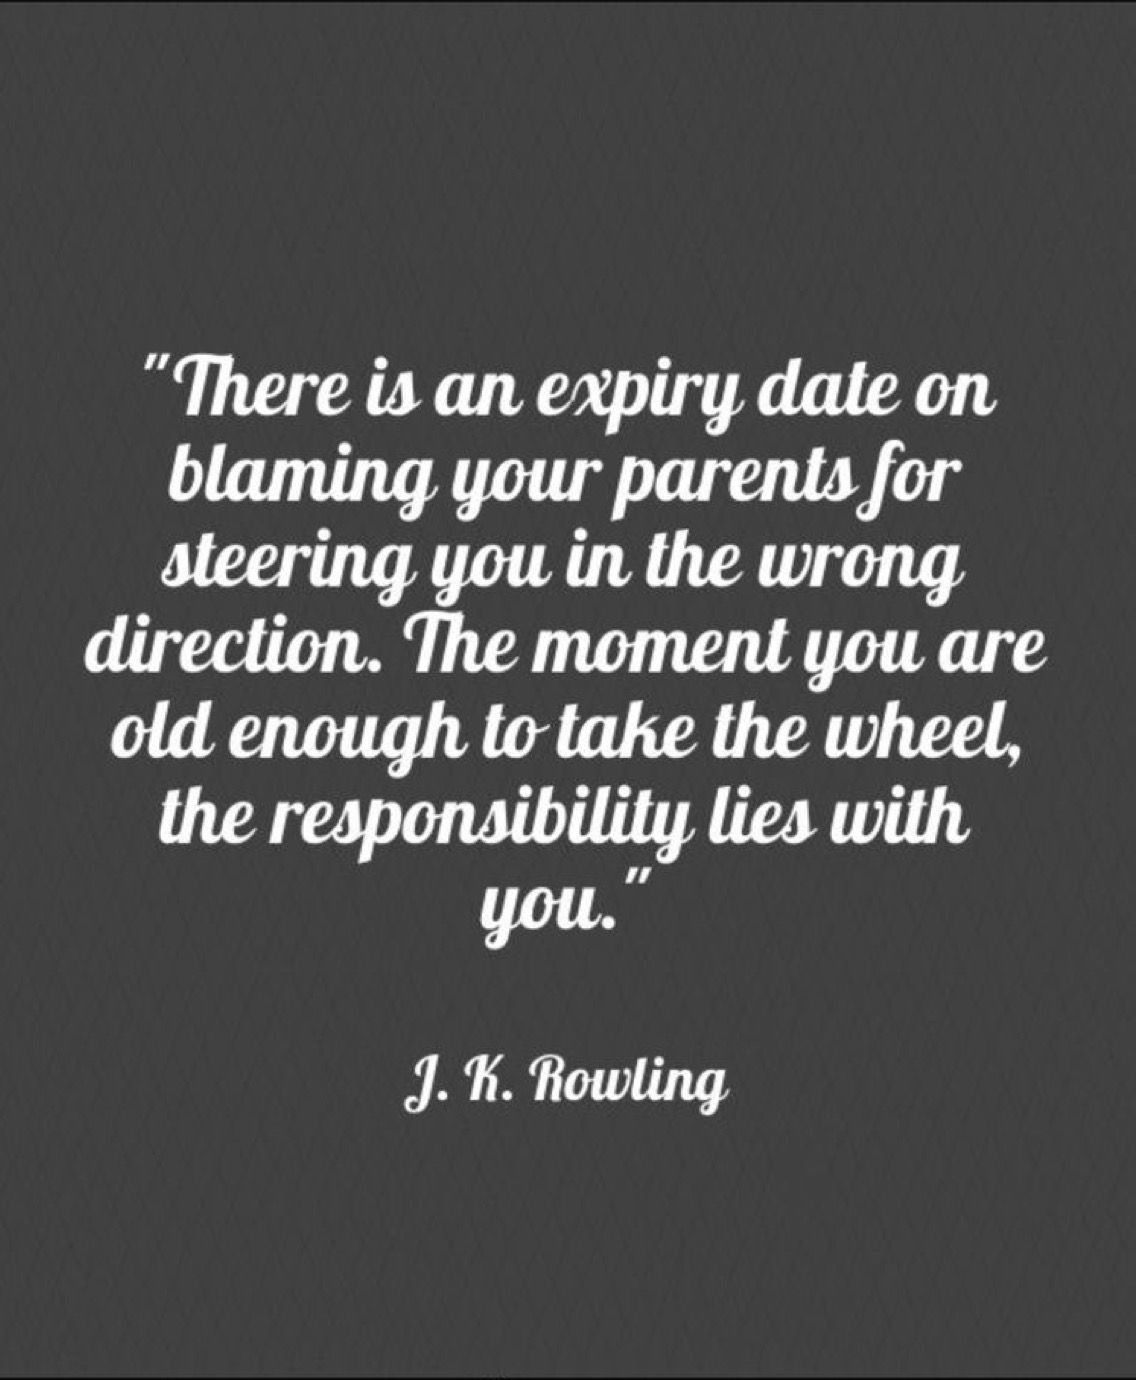 Pin by Osh gawsh on Quotes Disrespect quotes, Rowling